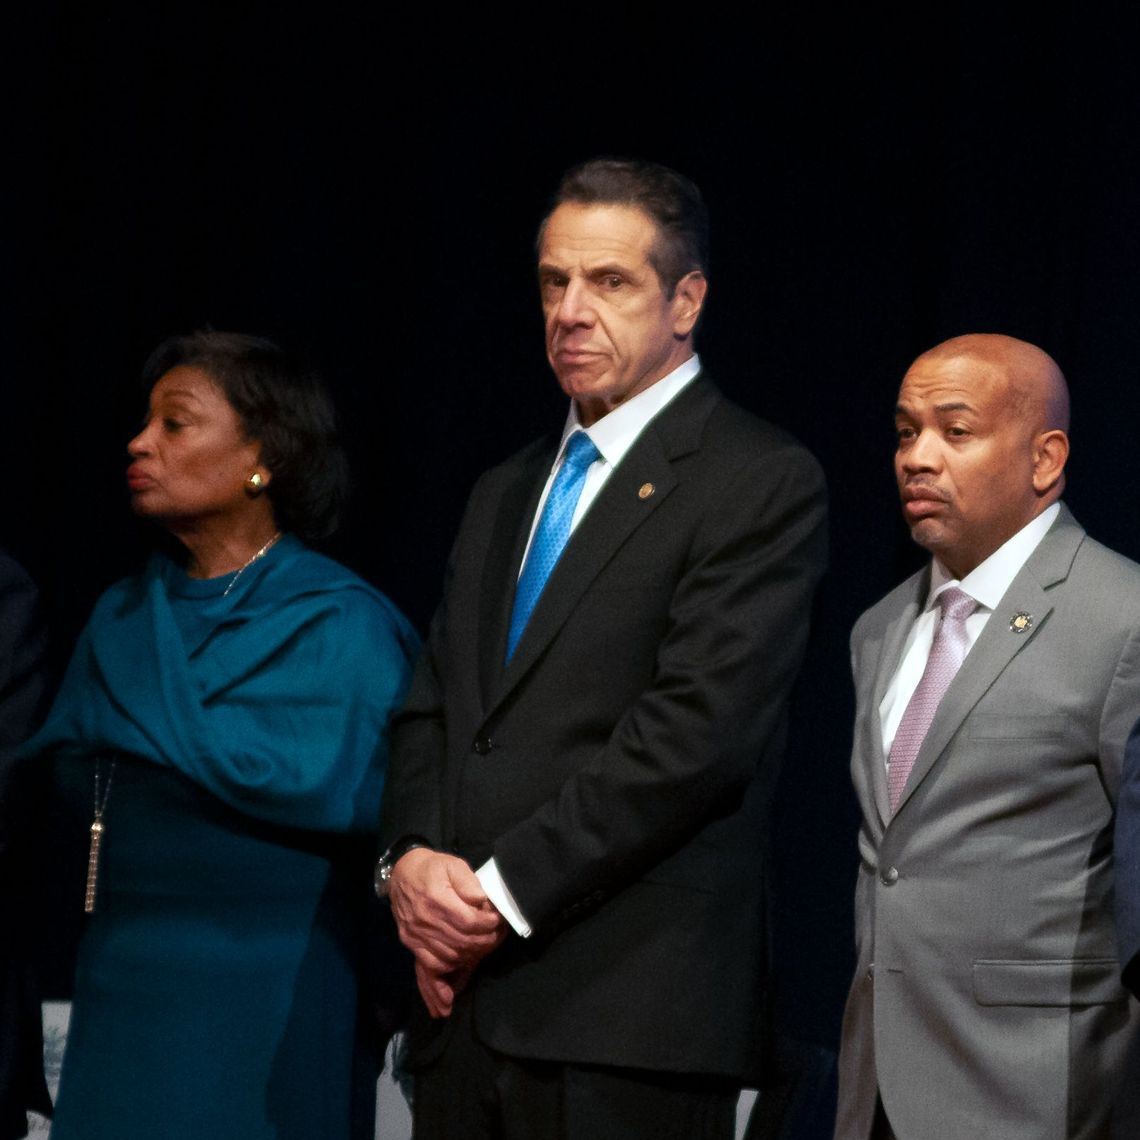 Governor Andrew Cuomo stands with Senate Majority Leader Andrea-Stewart-Cousins and Assembly Speaker Carl Heastie before delivering his State of the State address in Albany.